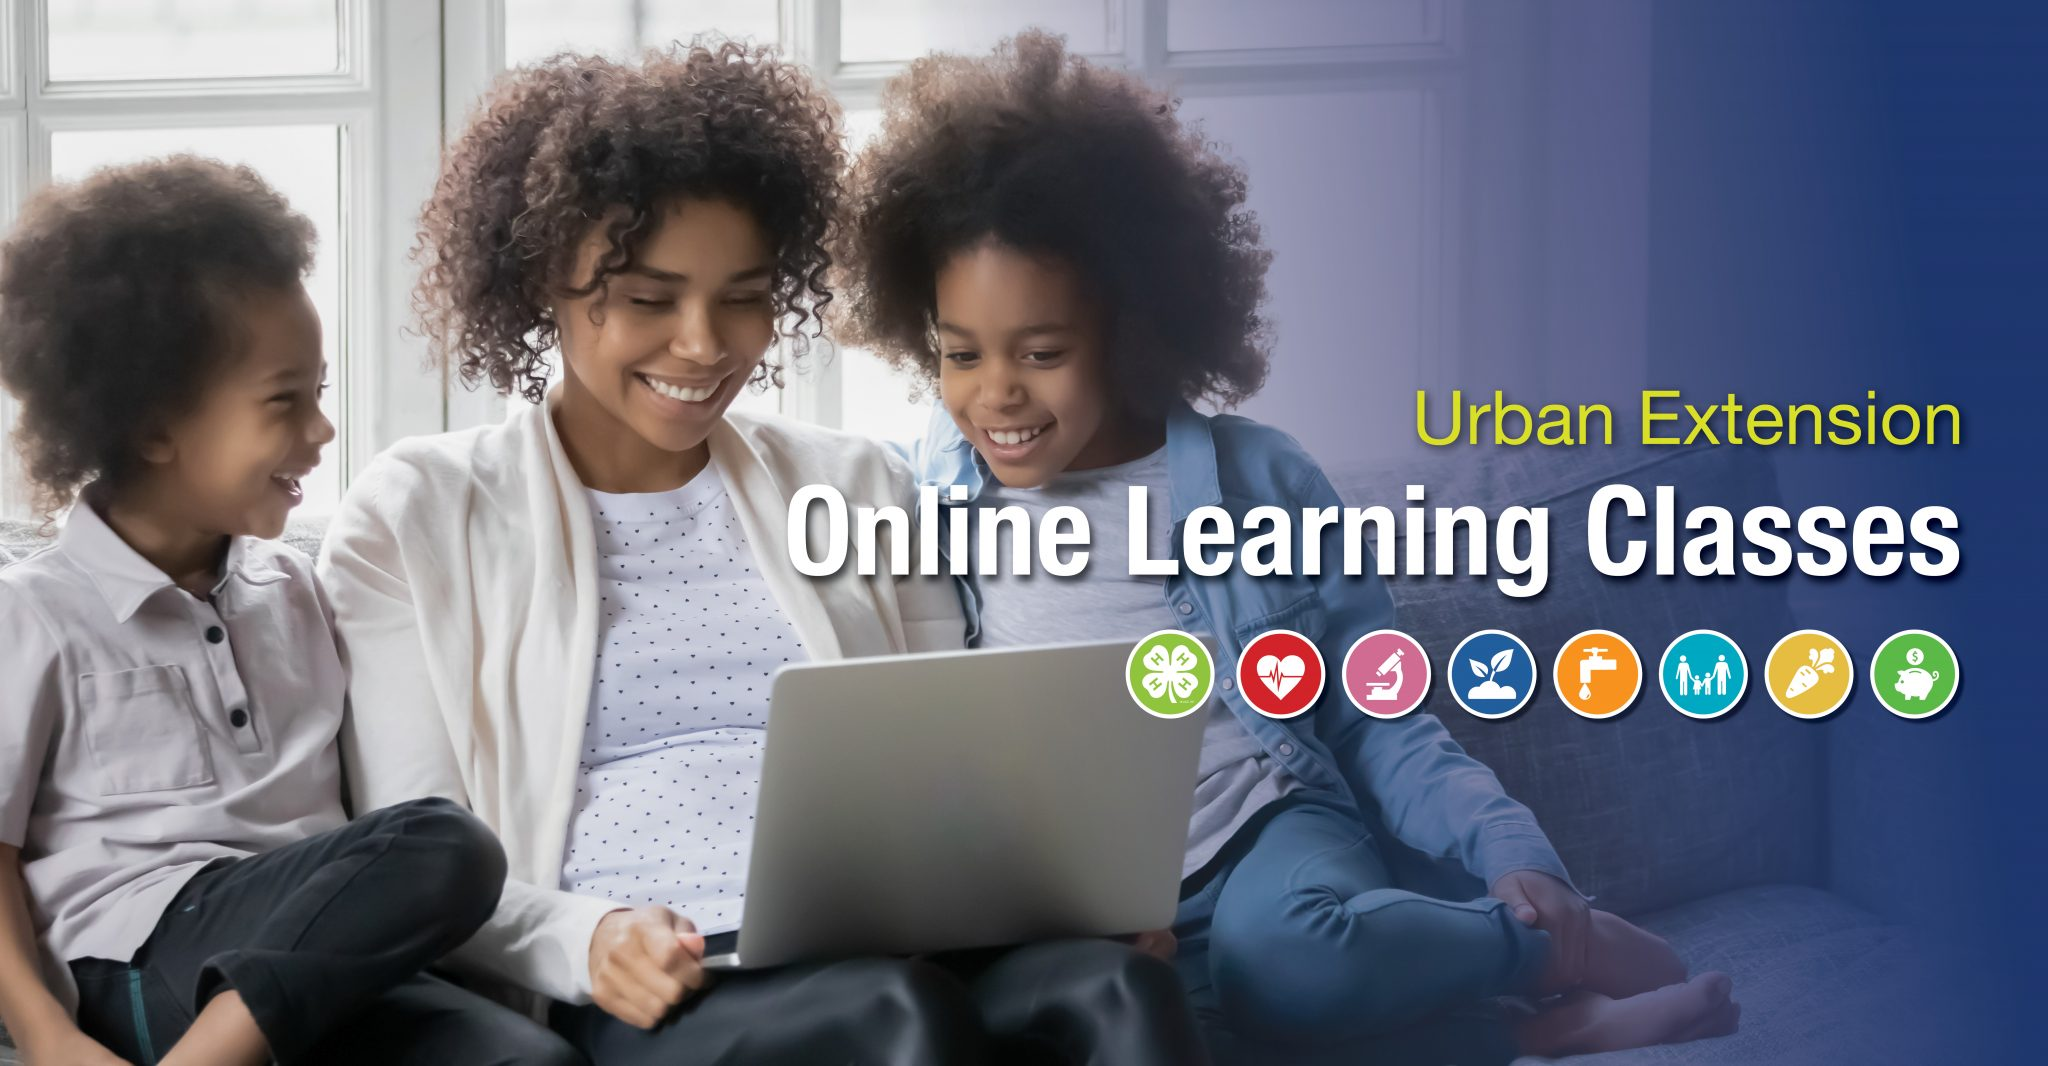 African American woman with two younger children sit on a sofa and look at a laptop together. Text: Urban Extension Online Learning Classes with different icons to represent topic areas